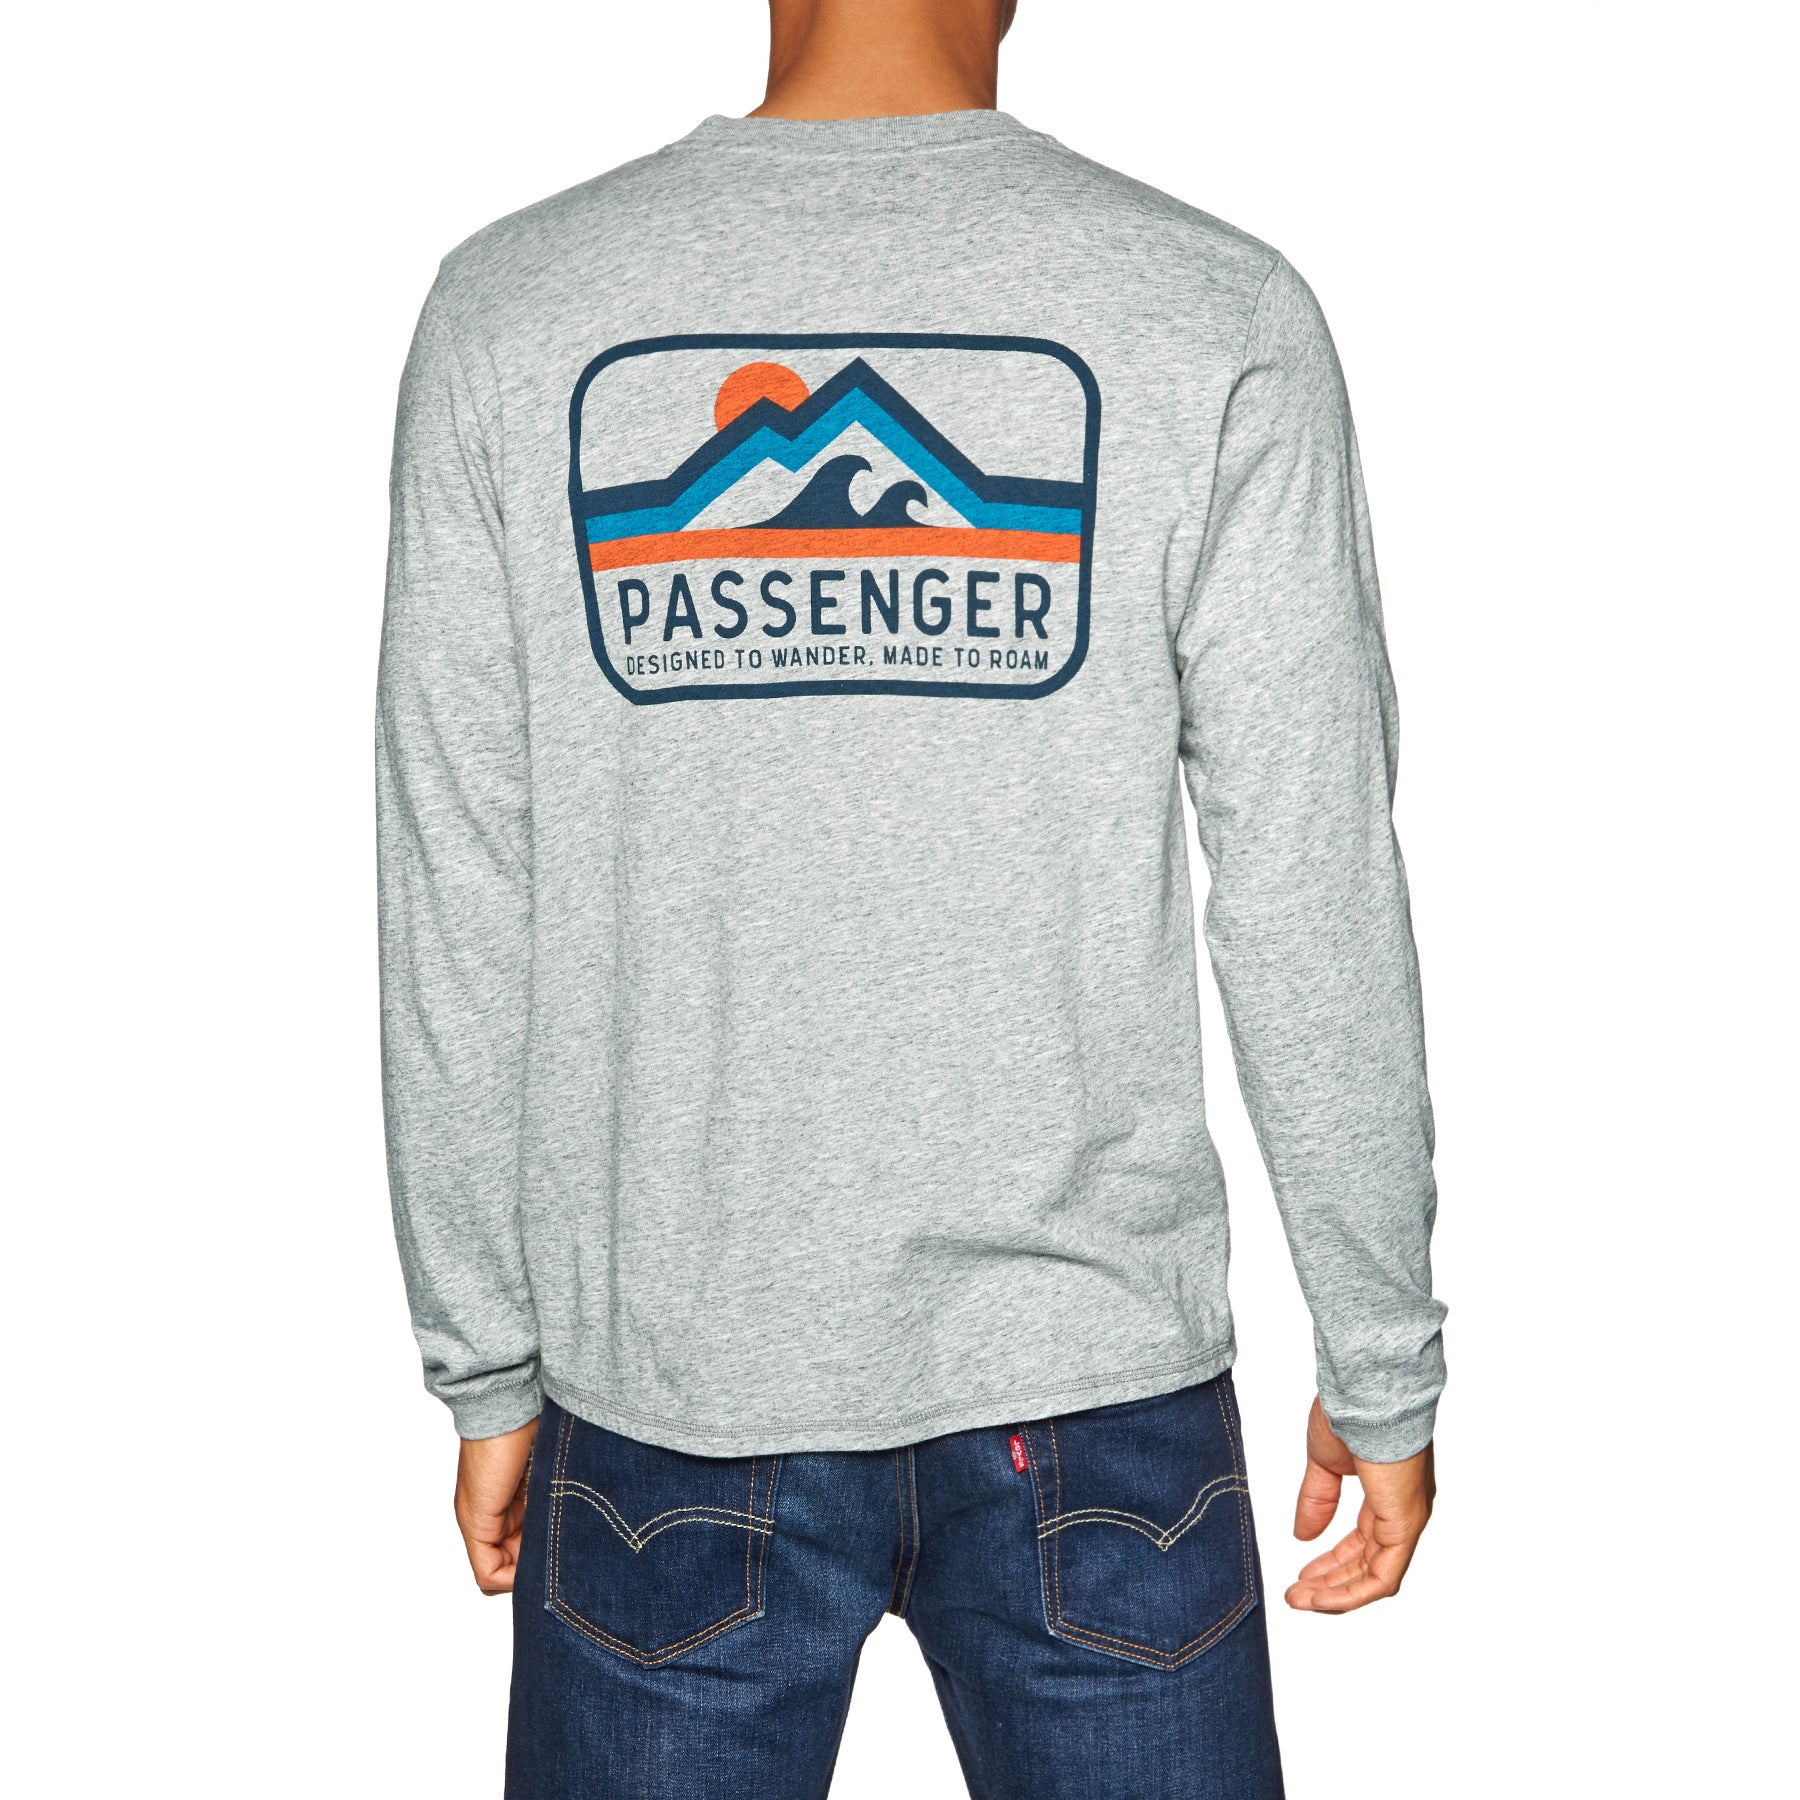 Passenger Clothing Peaked Long Sleeve T-Shirt